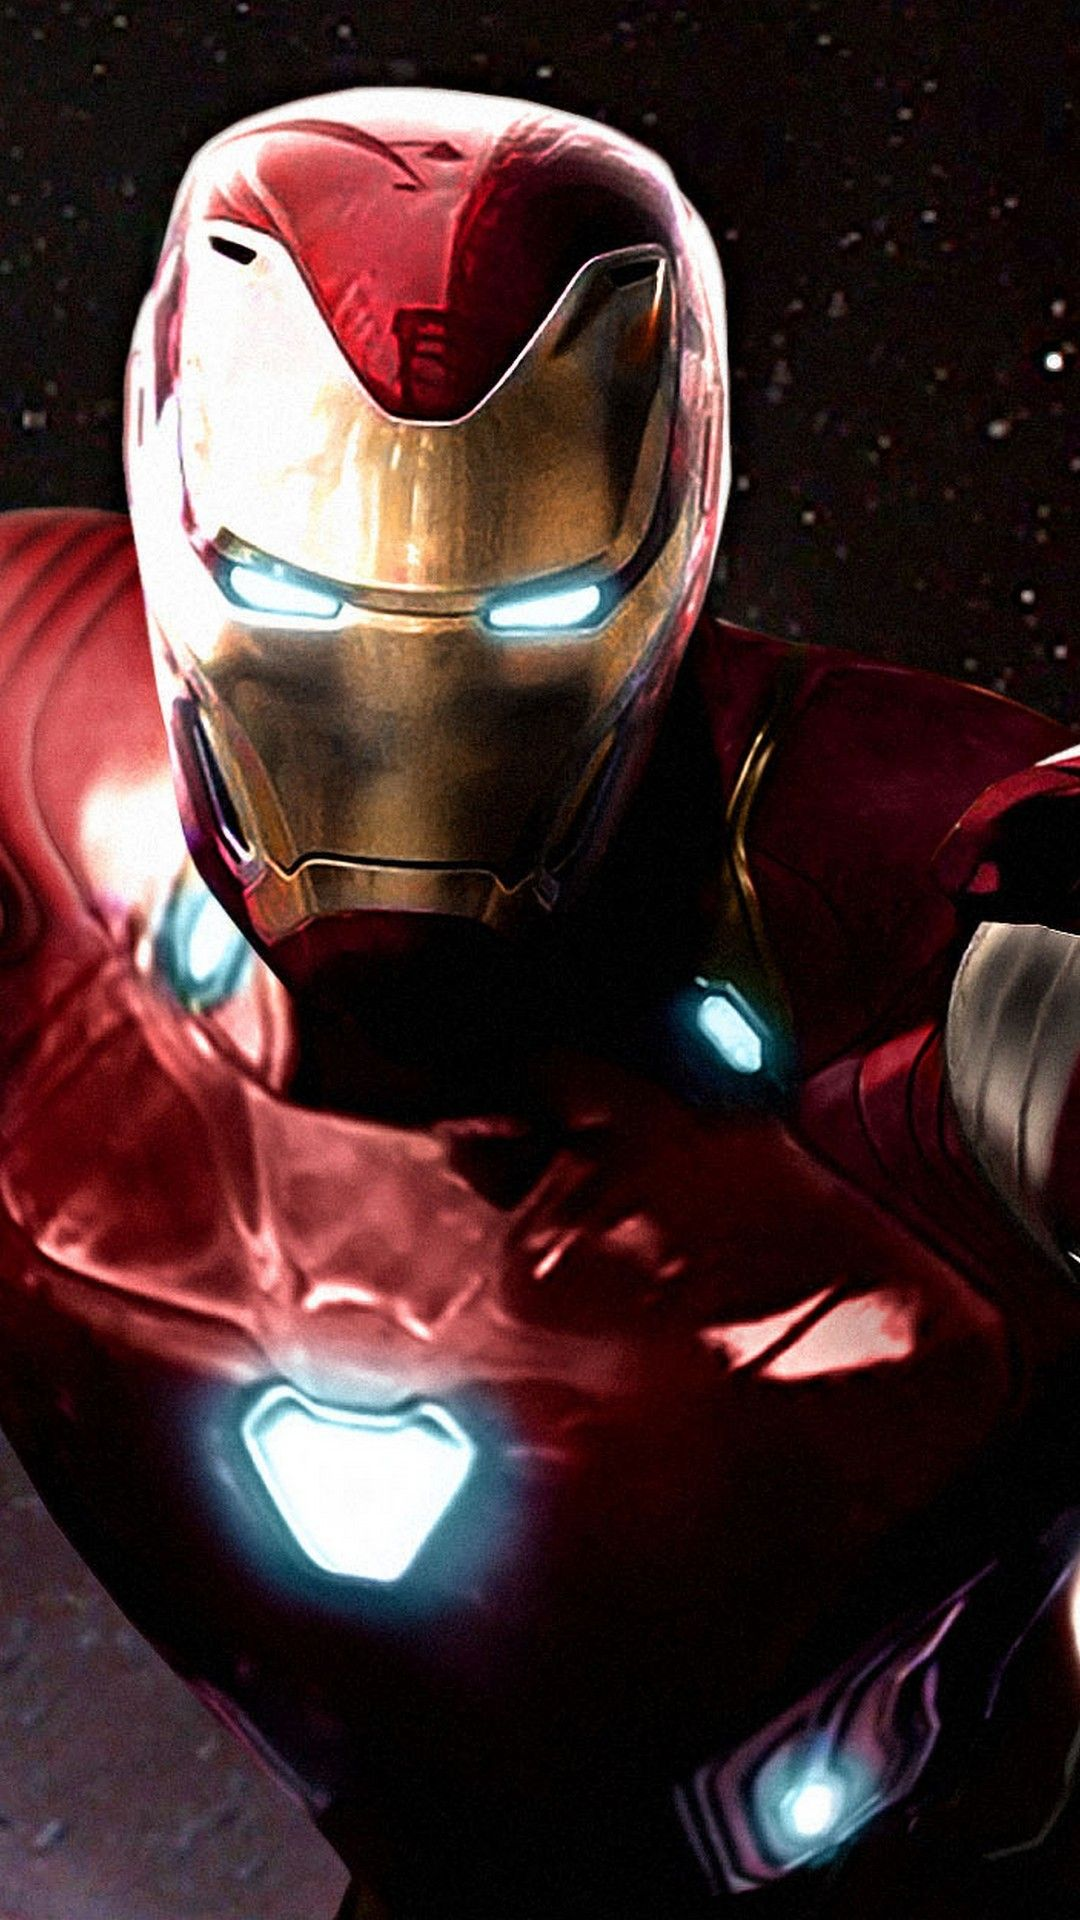 Iron Man Avengers Infinity War Iphone Wallpaper Iphonewallpapers